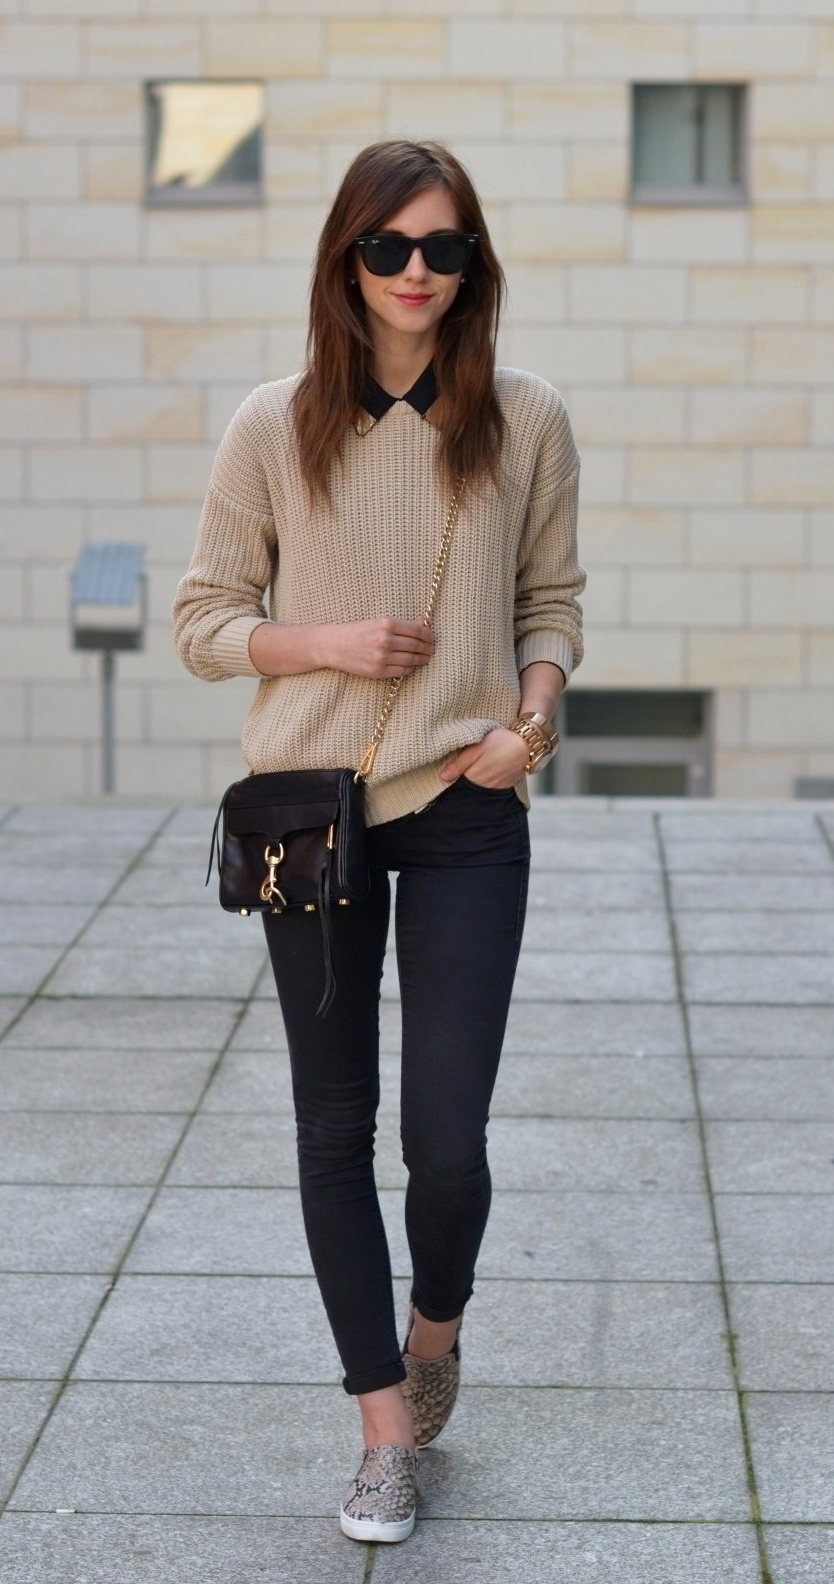 25-stylish-winter-outfits-ideas-12